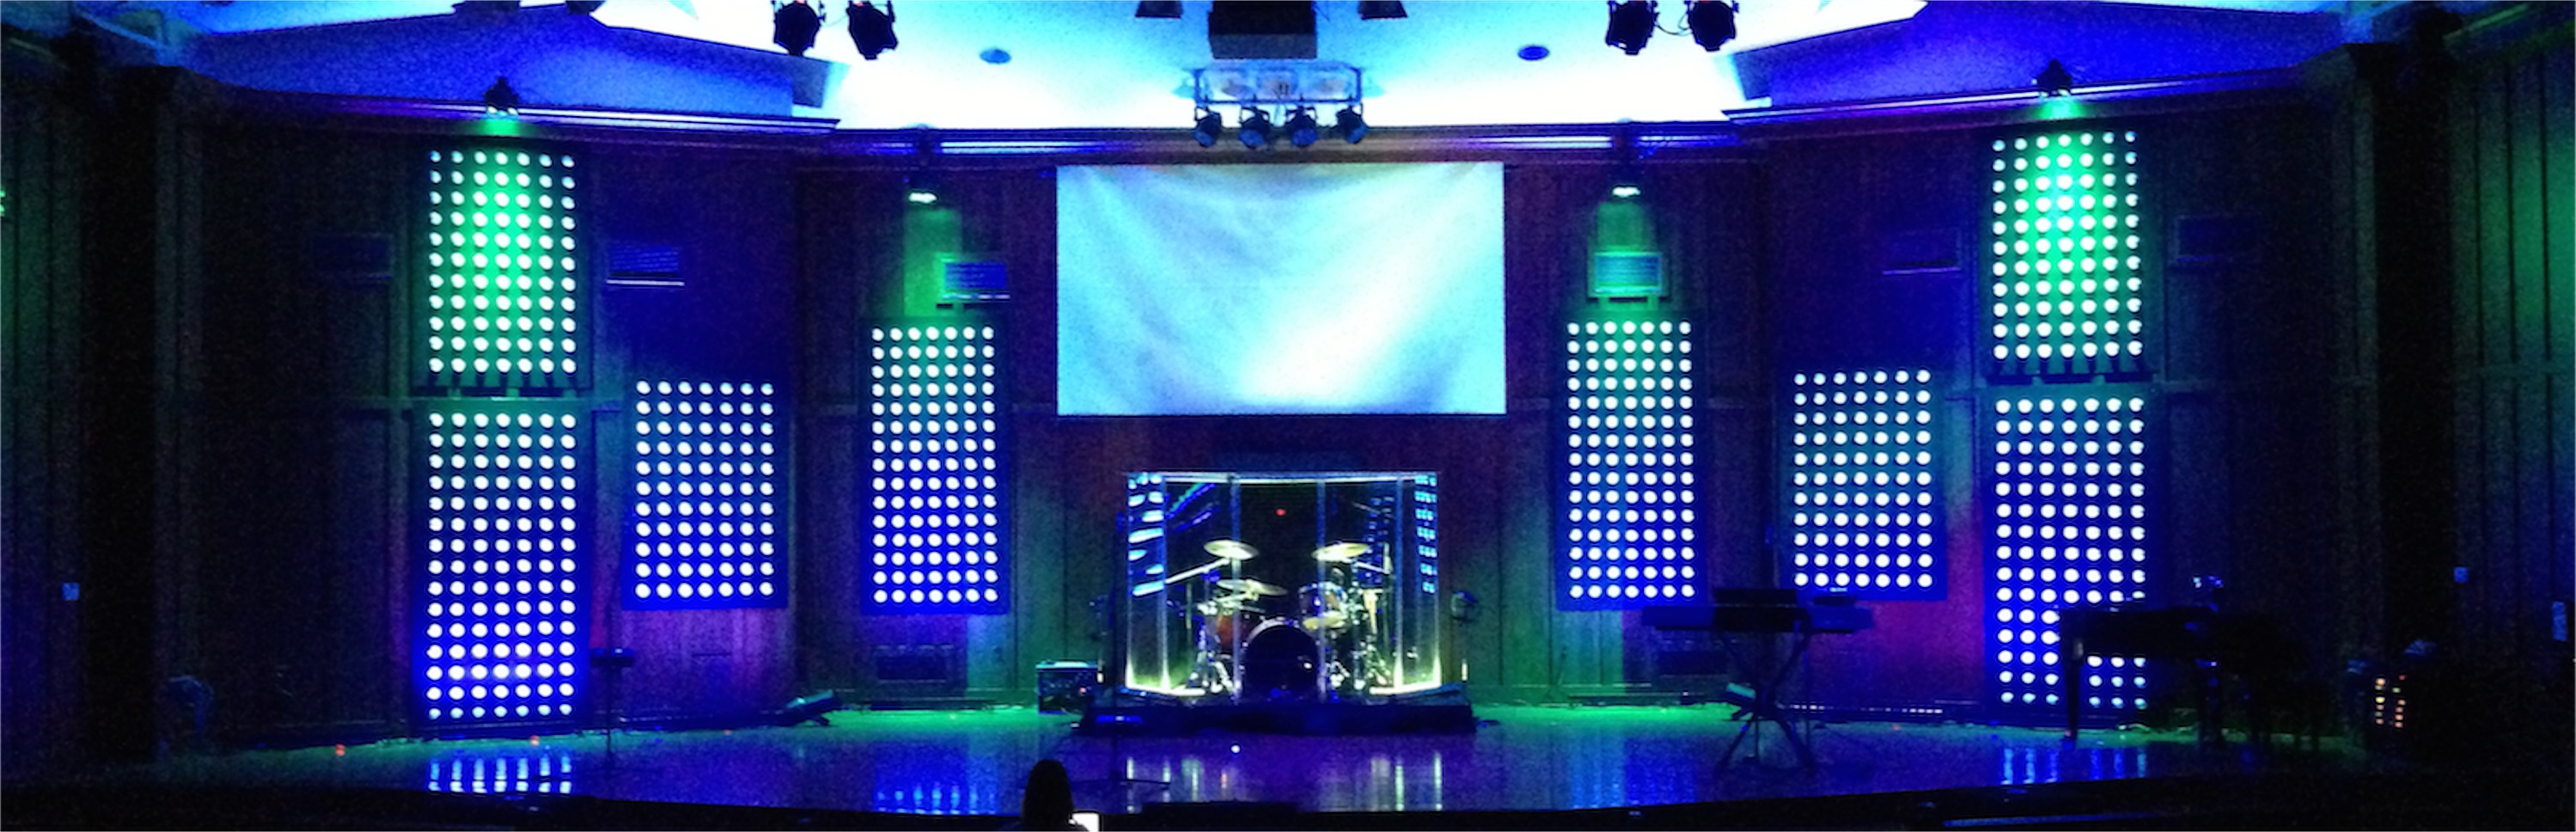 Dot Panels Church Stage Design Ideas